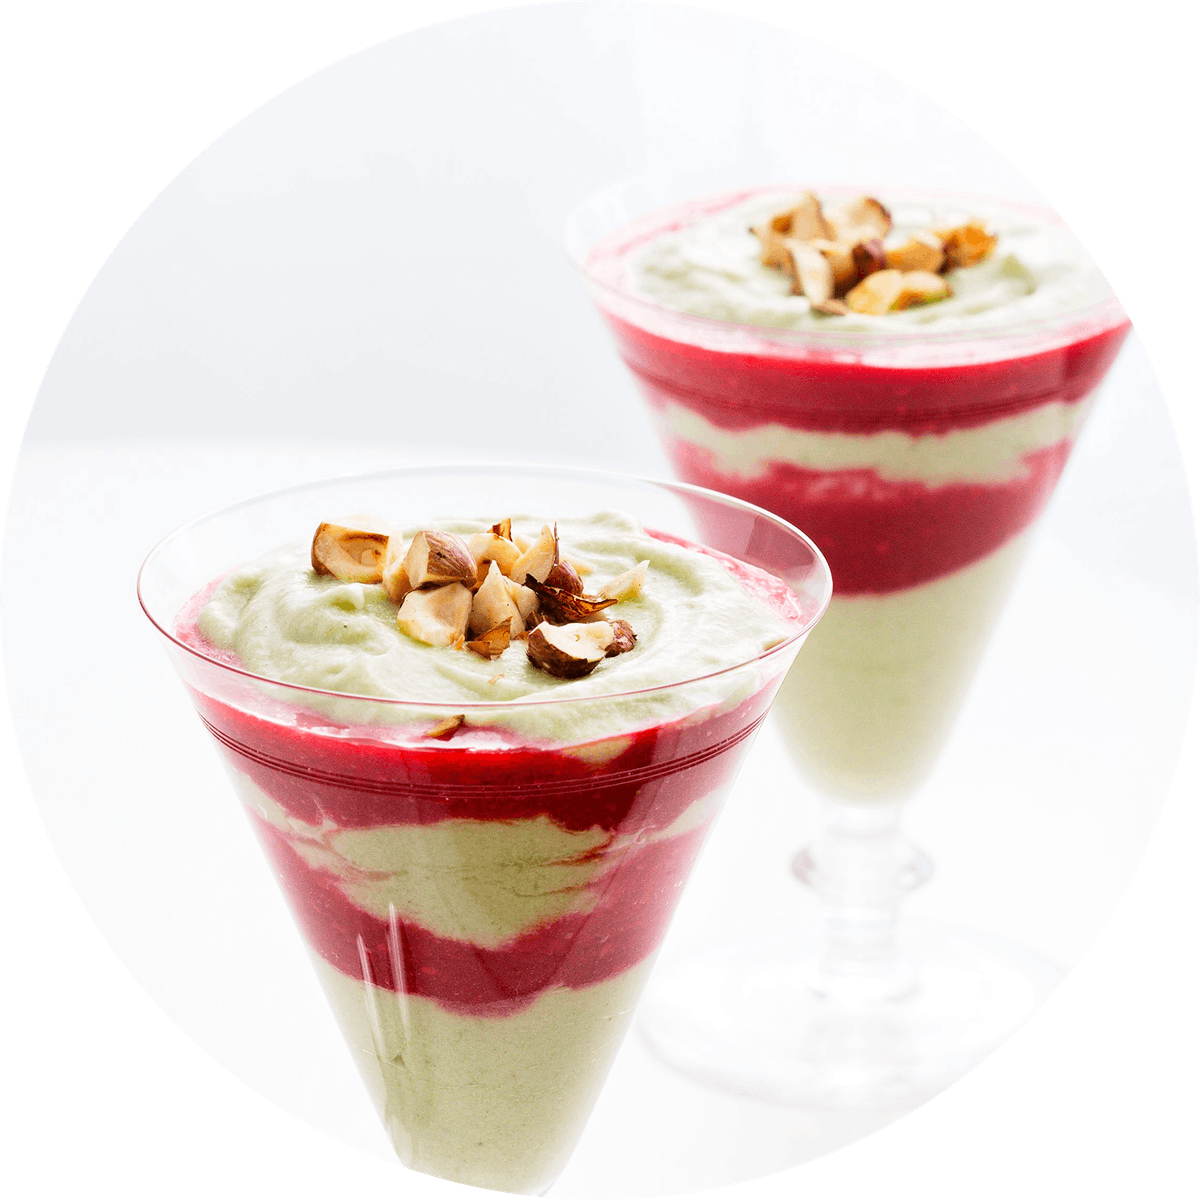 LCHF-desserter